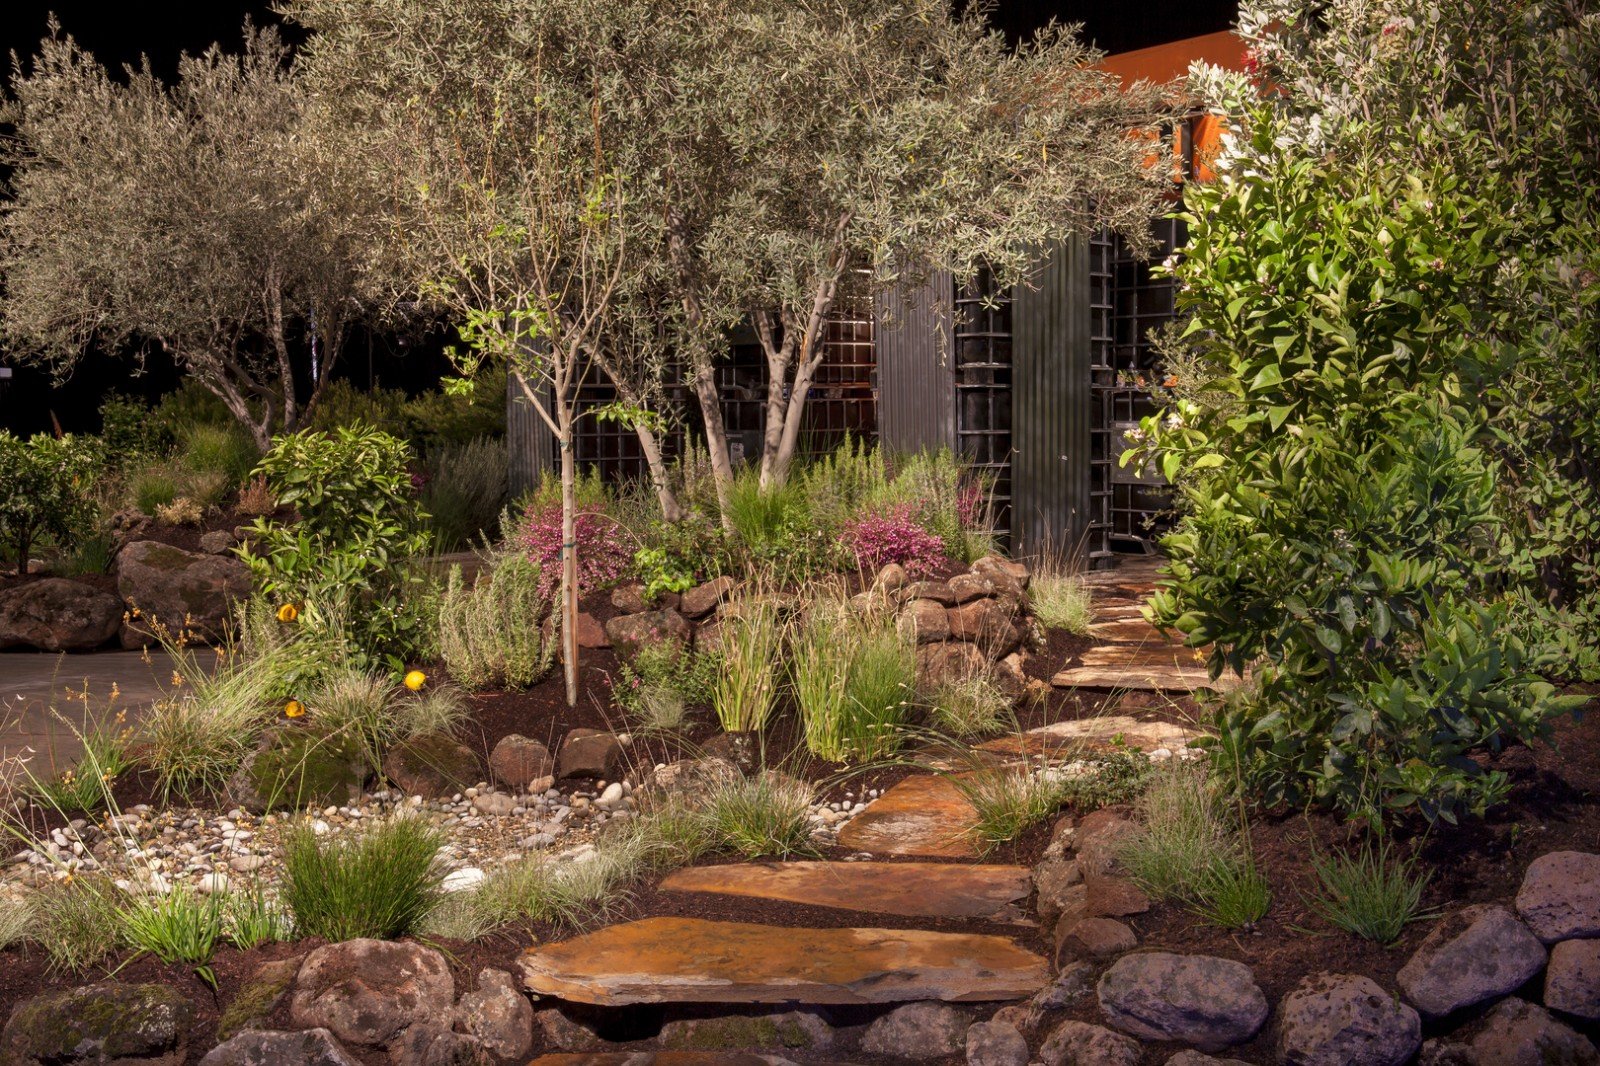 no_city_water_for_this_garden_9_20161102_1294678470